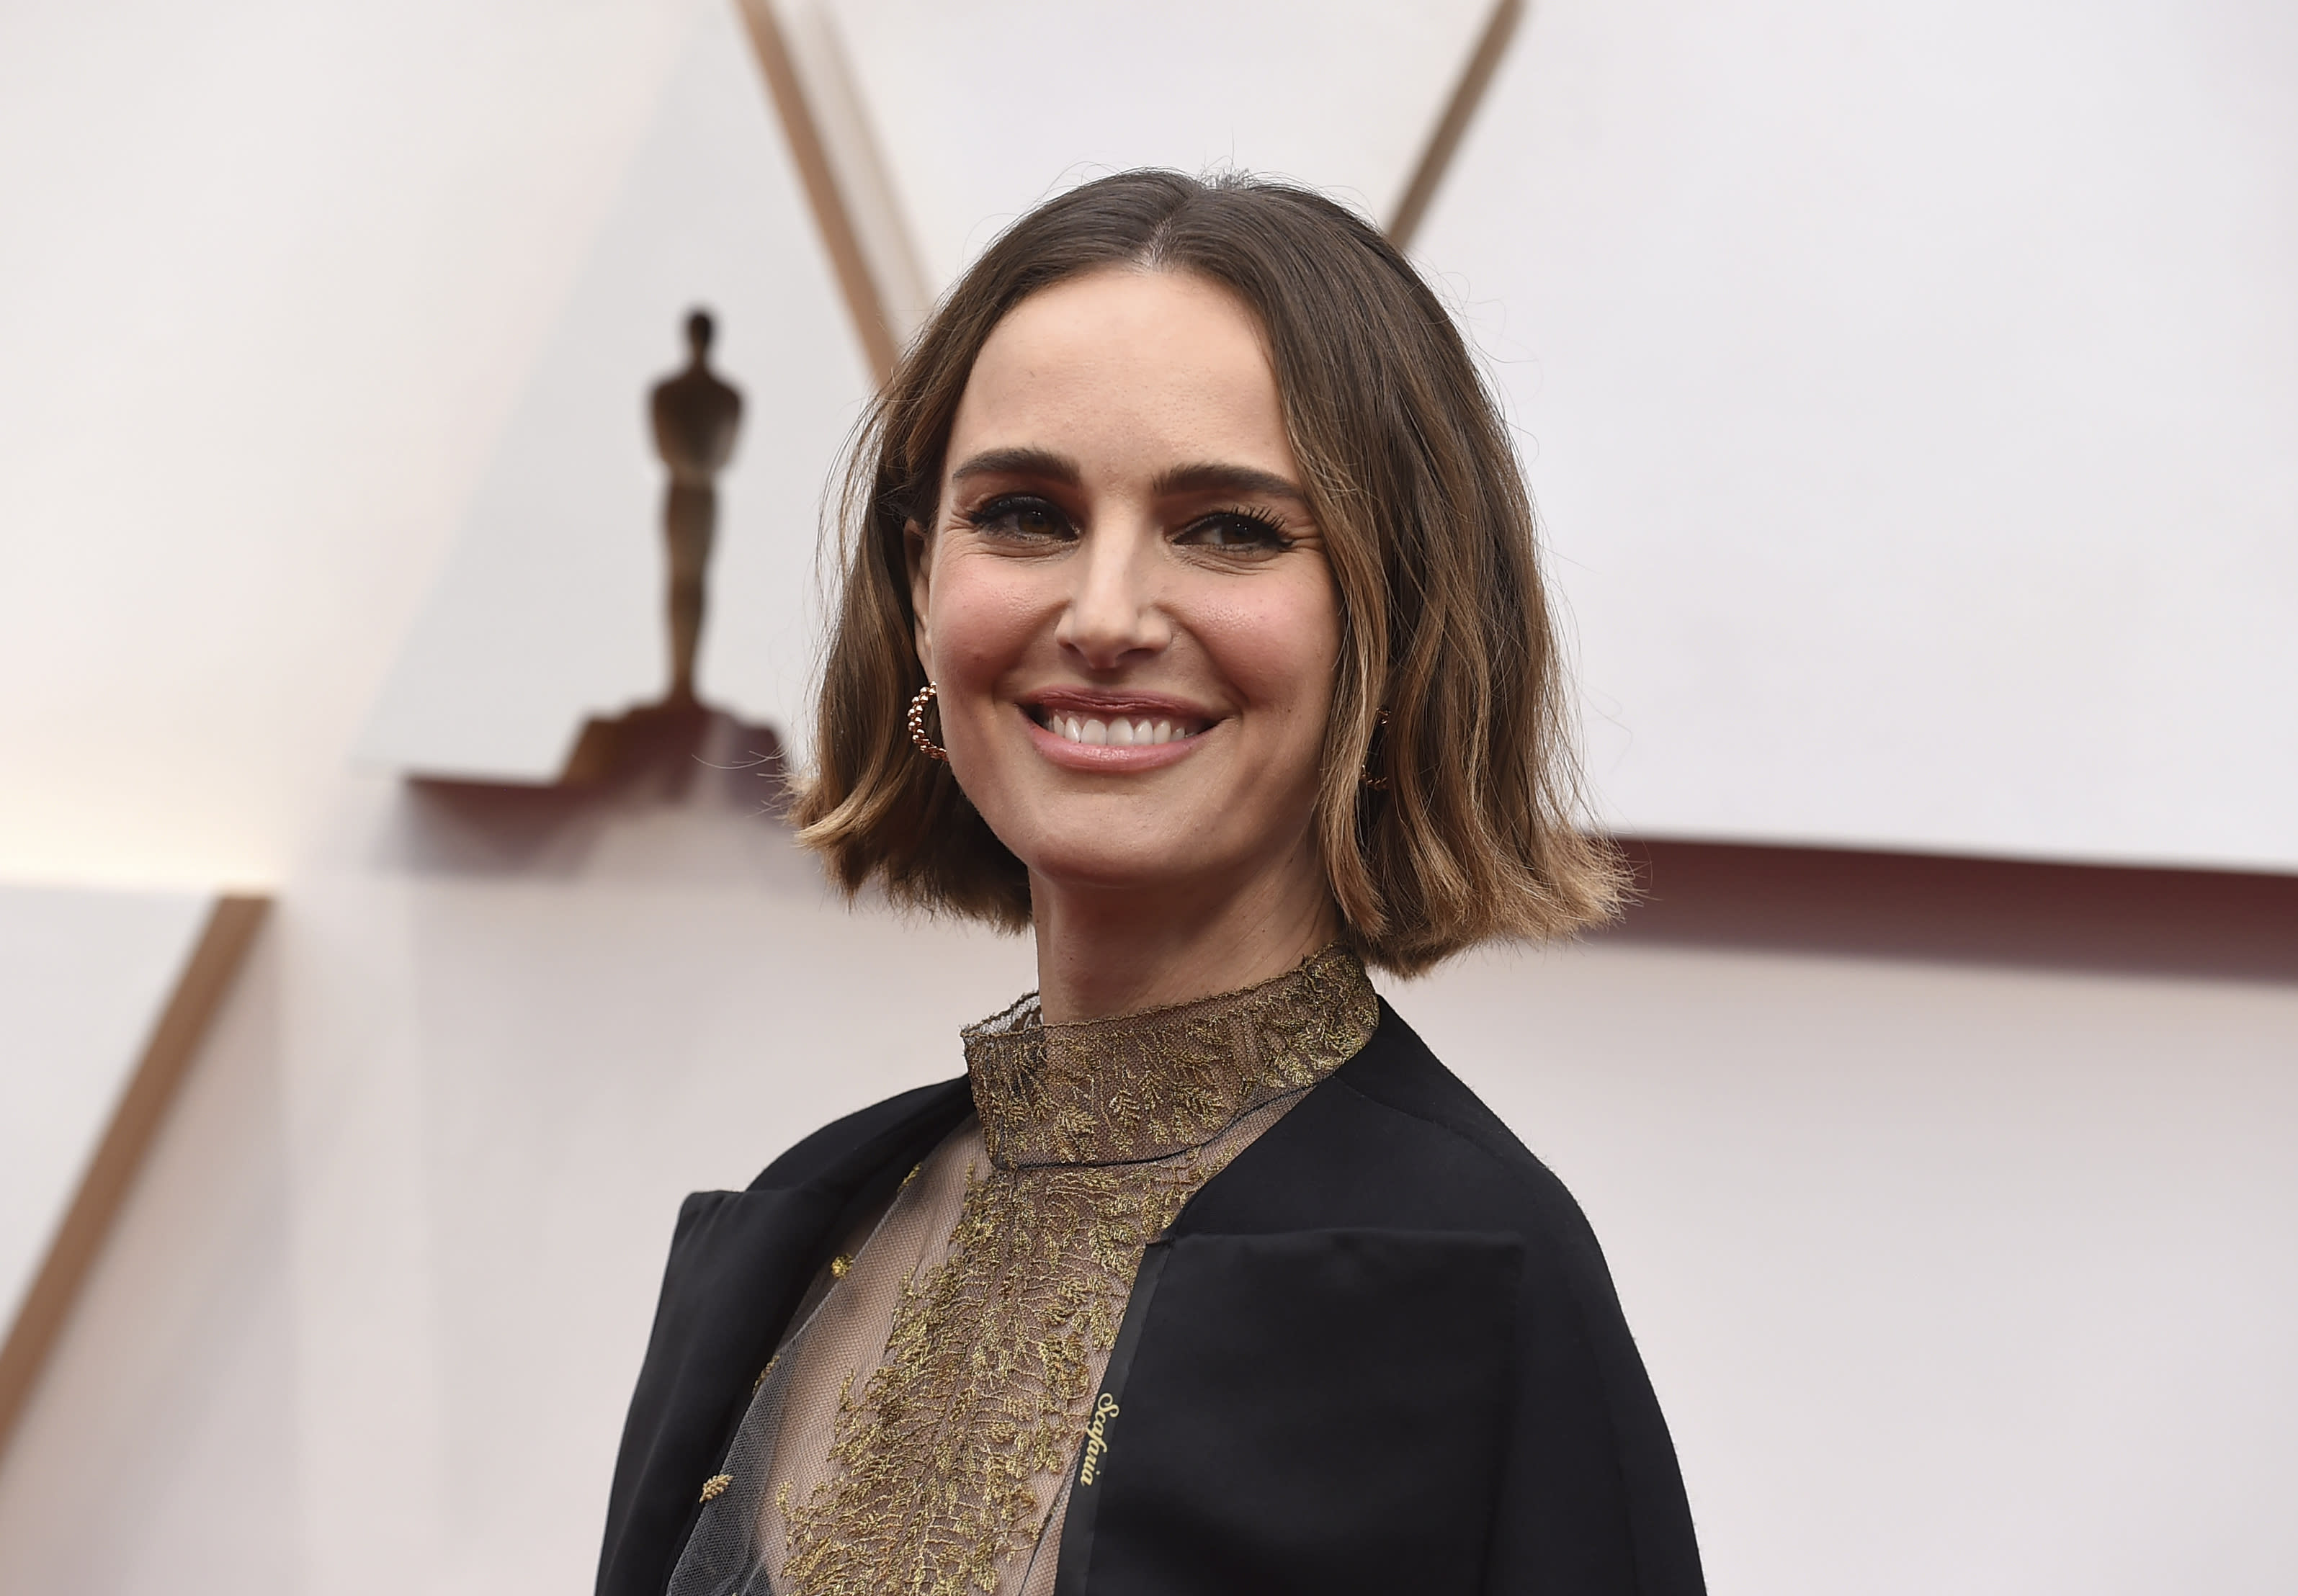 Rose McGowan slams Natalie Portman's 'snubbed female directors' outfit for the Oscars